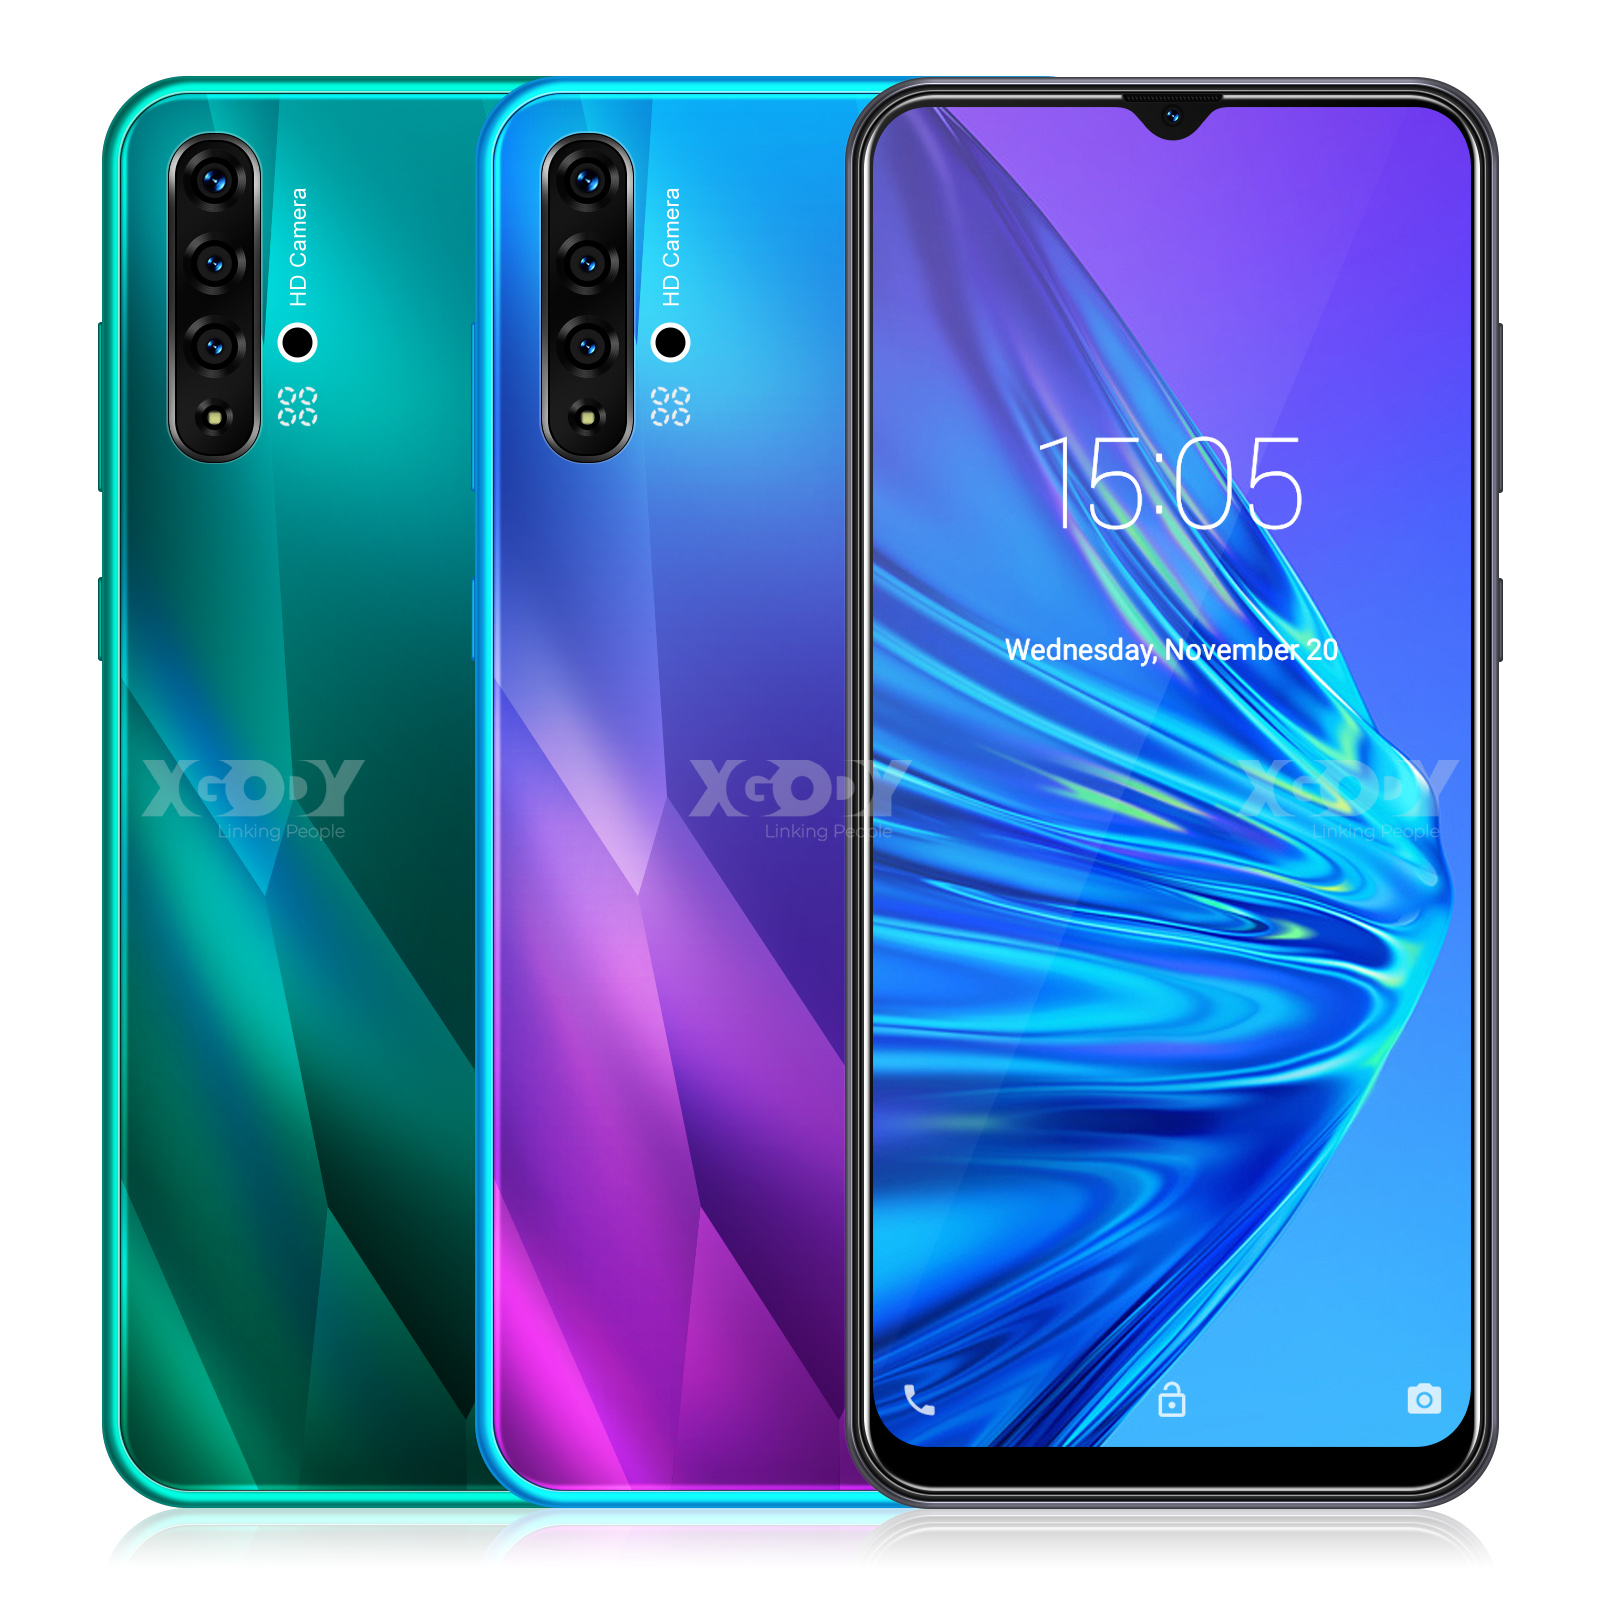 XGODY 6.5inch 19:9 Big Screen 3G Smartphone Android 9.0 1GB 4GB <font><b>MTK6580</b></font> <font><b>Quad</b></font> <font><b>Core</b></font> 5MP Camera 3000mAh WIFI GPS Mobile Phone image